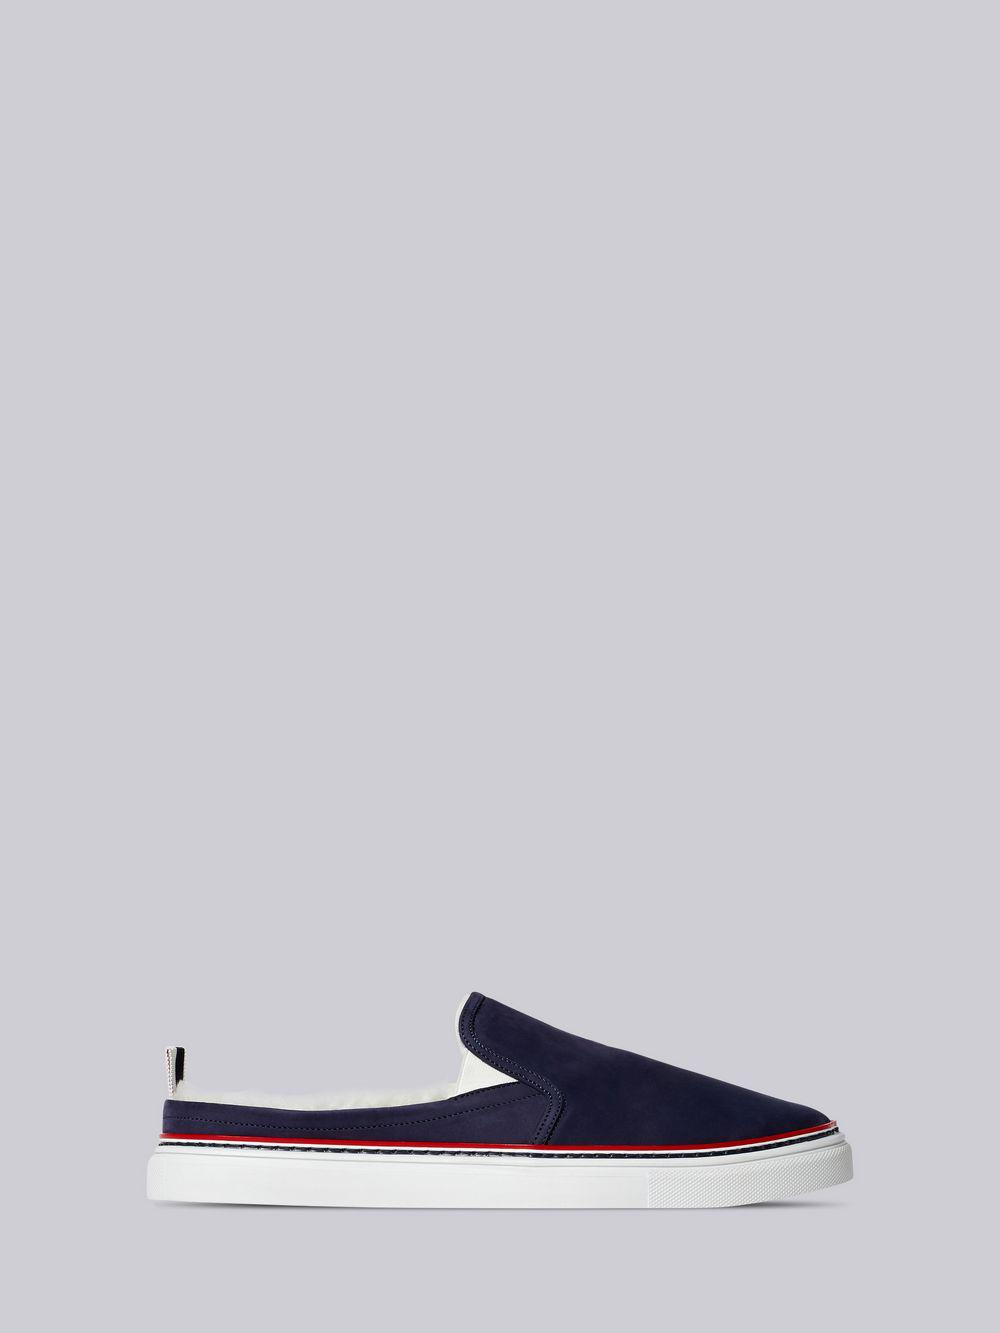 c3cb98419c8 Thom Browne Shearling Lining Trainer Slide in Blue for Men - Lyst